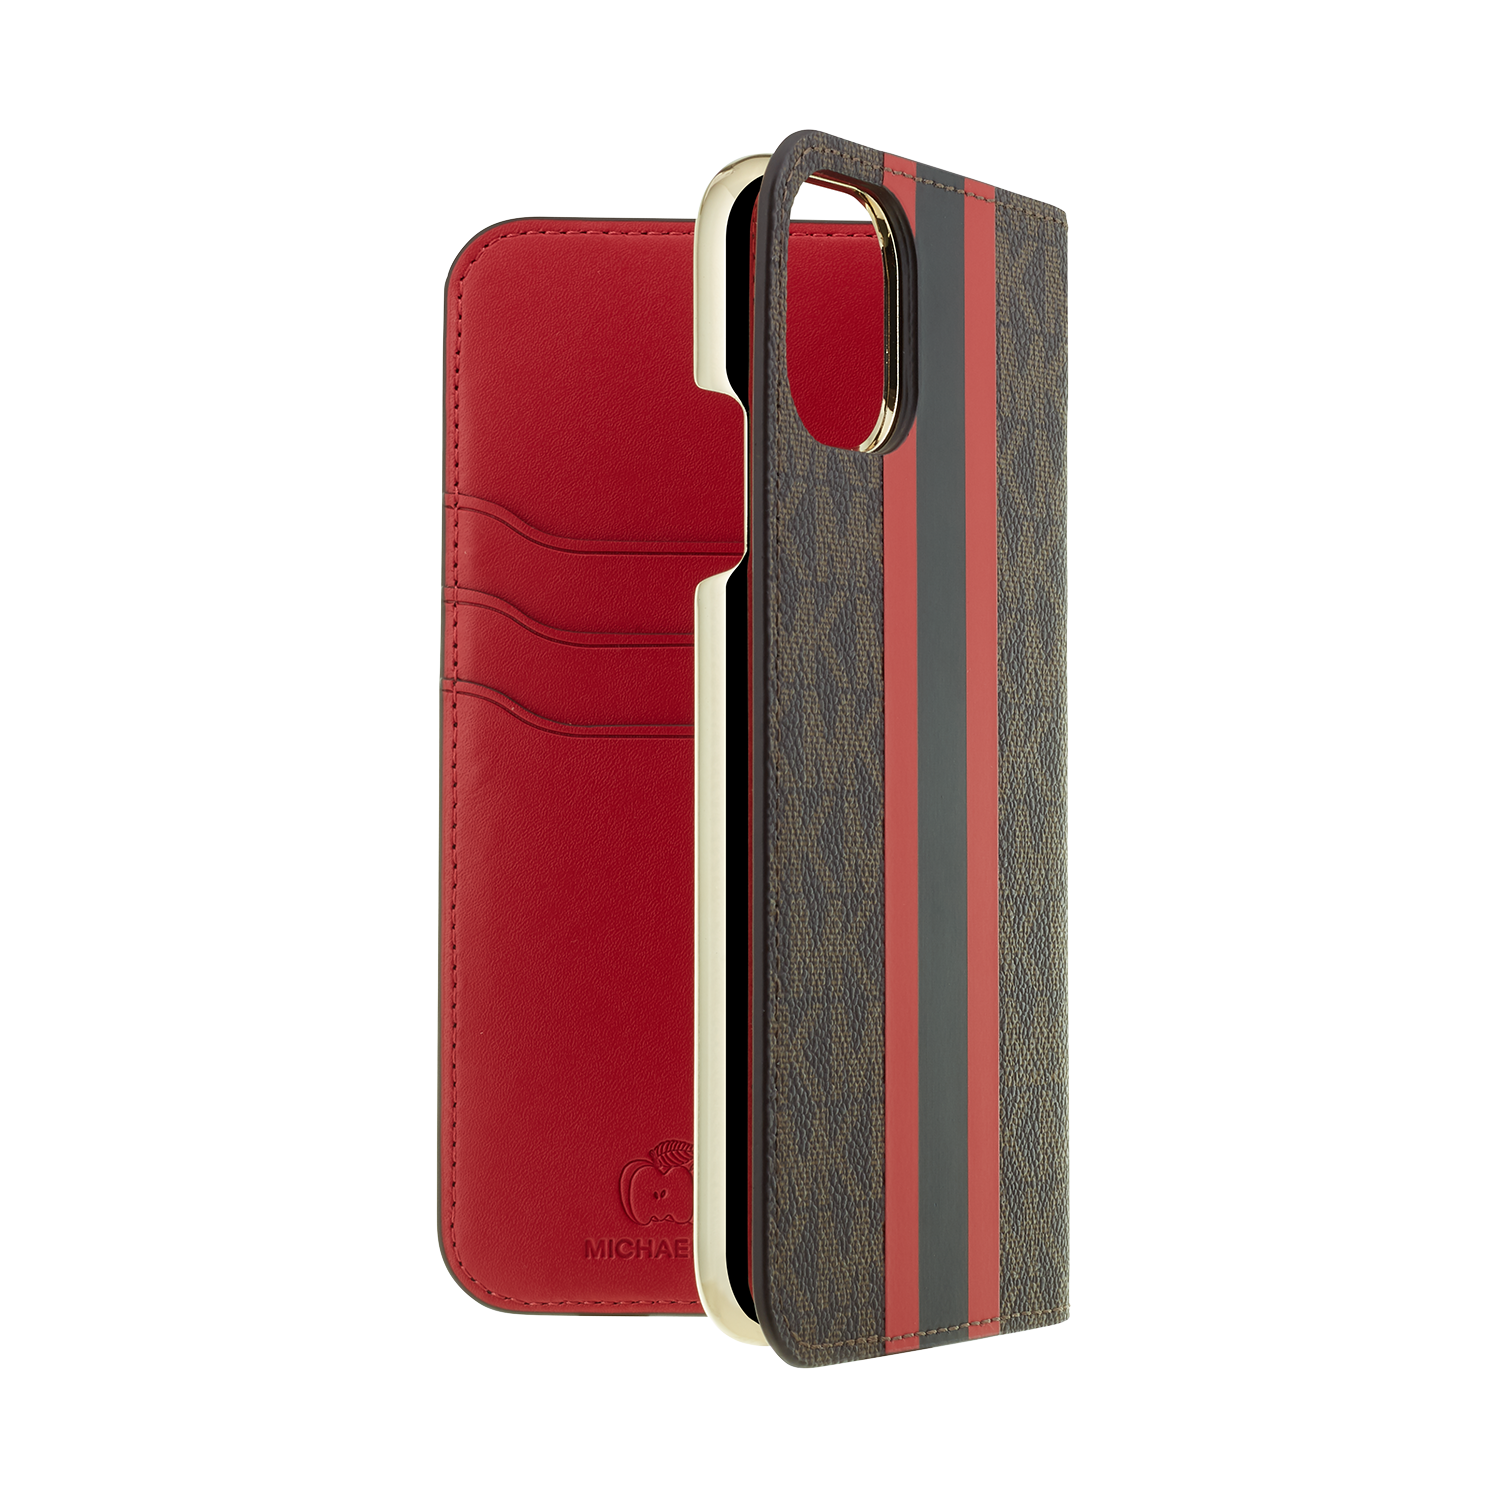 MICHAEL KORS - Folio Case for iPhone 11 Pro / ケース - FOX STORE